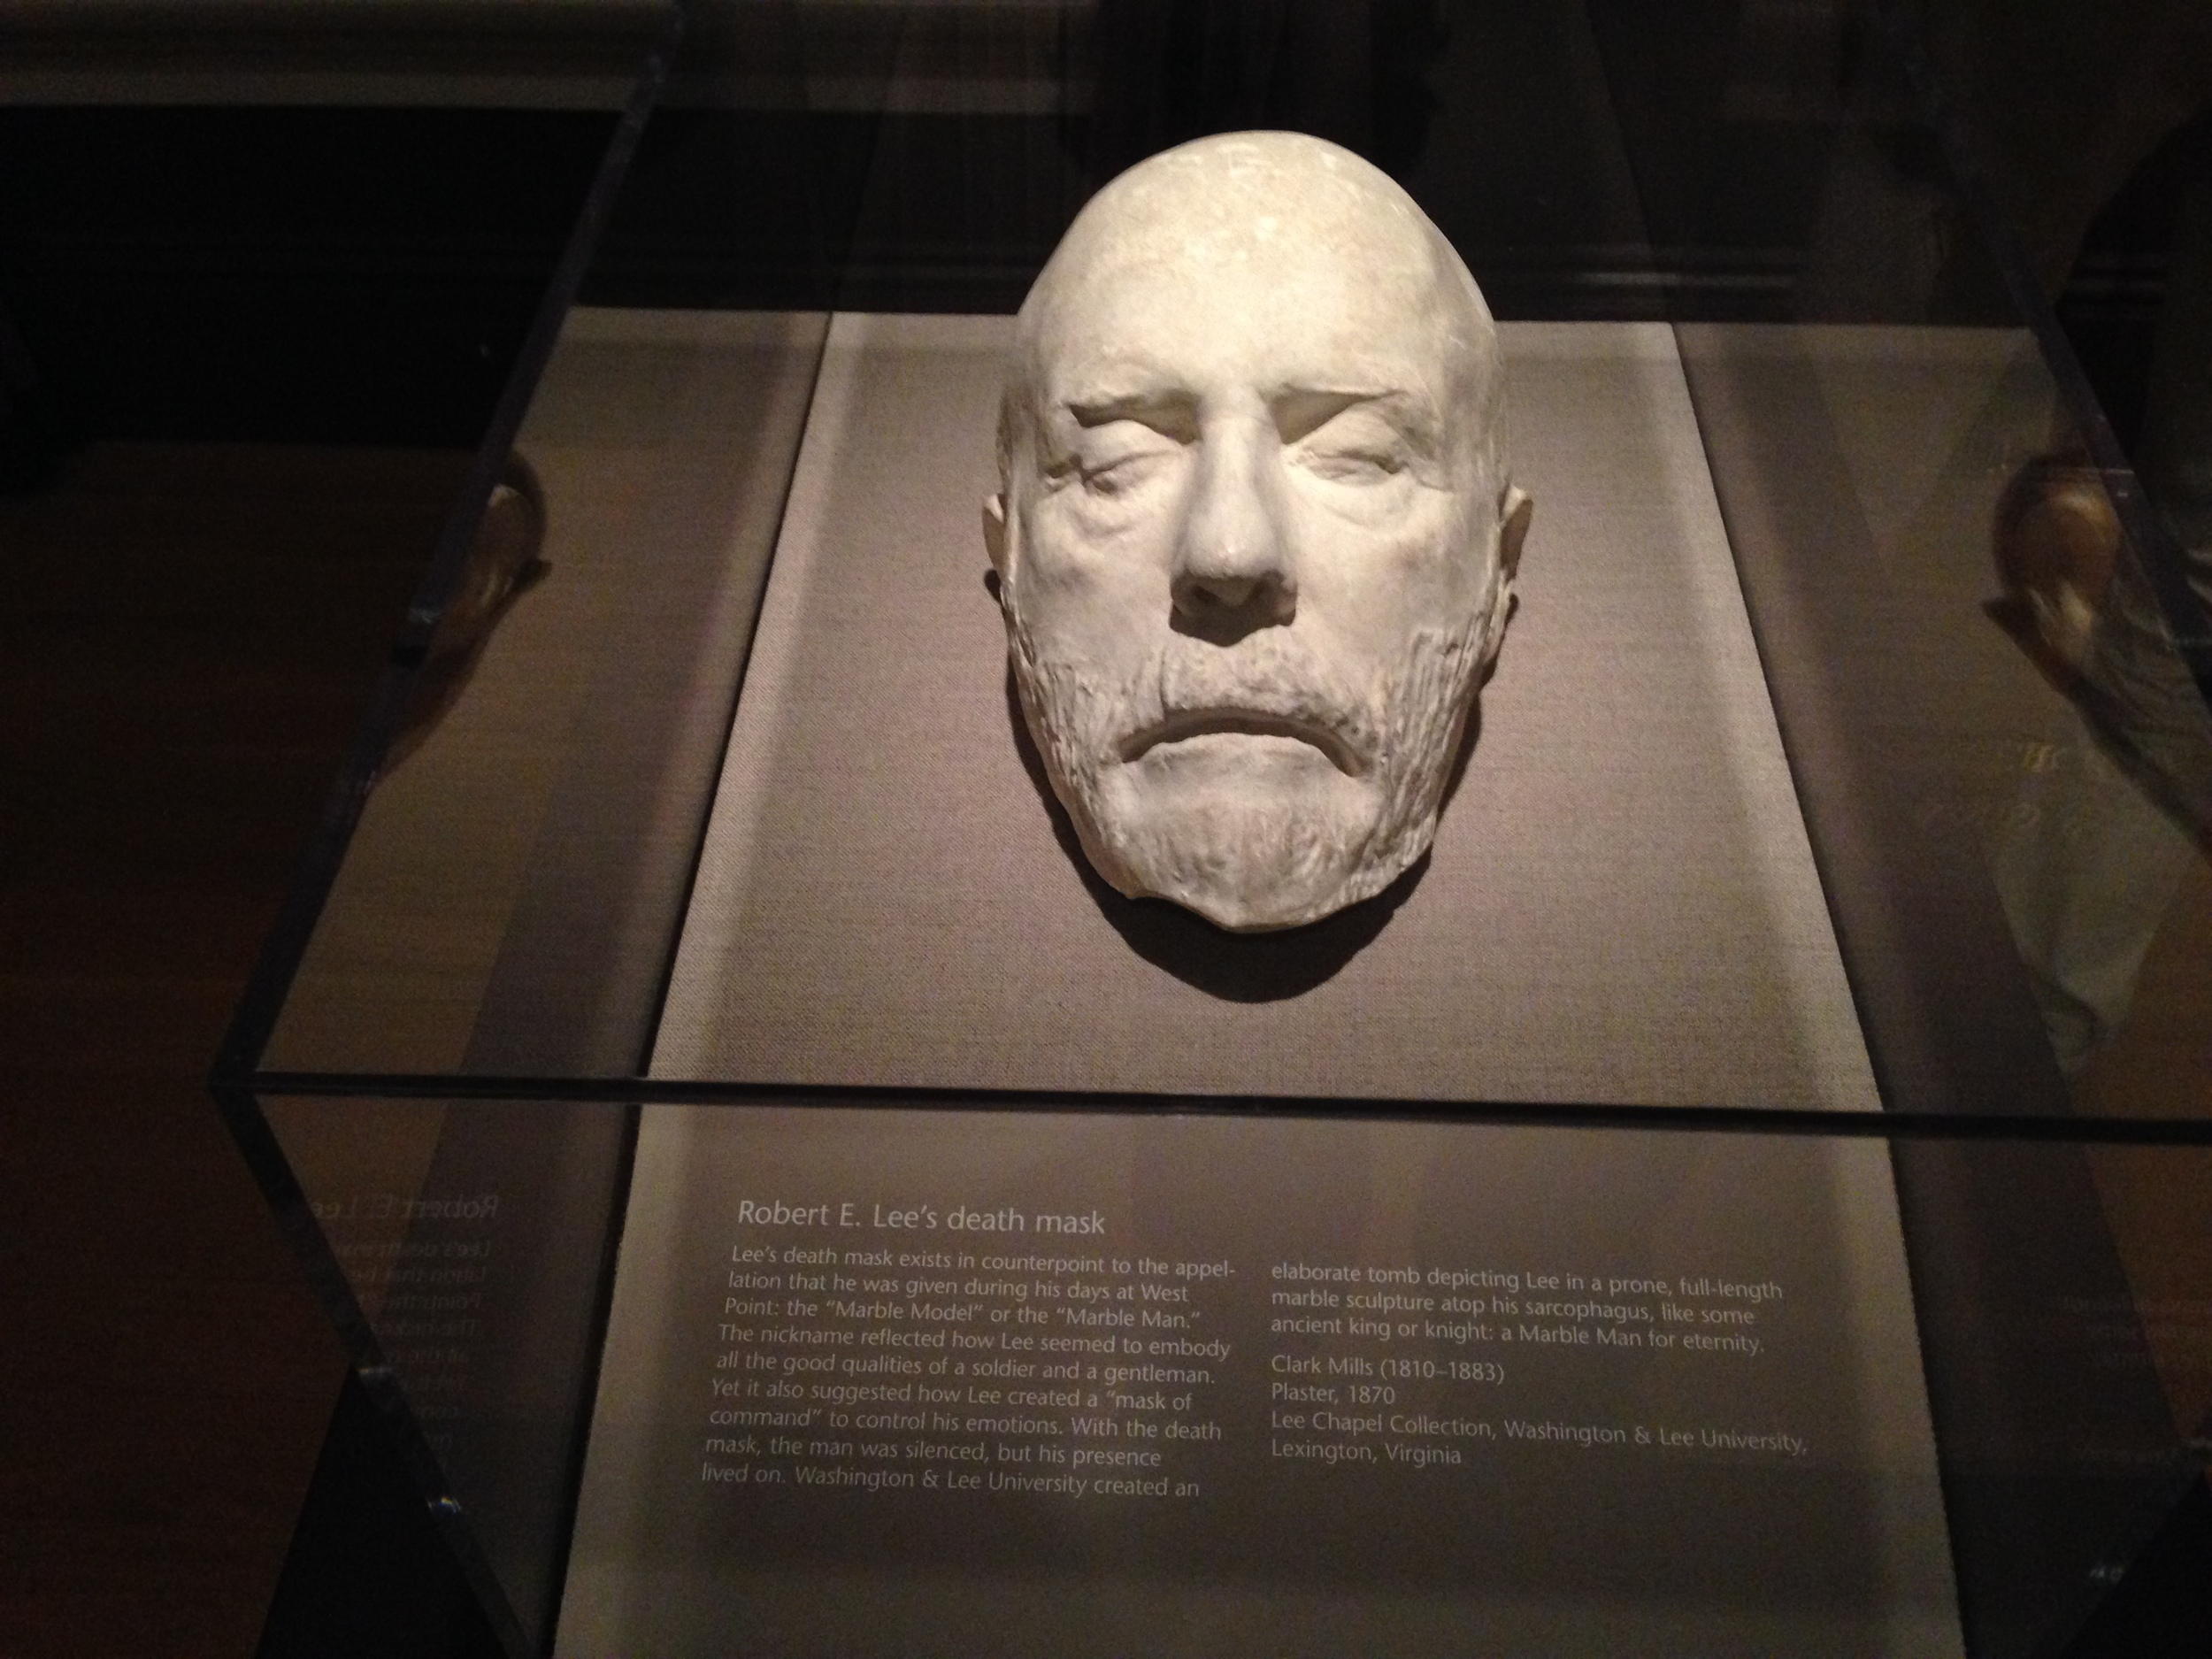 The death mask of Robert E. Lee.